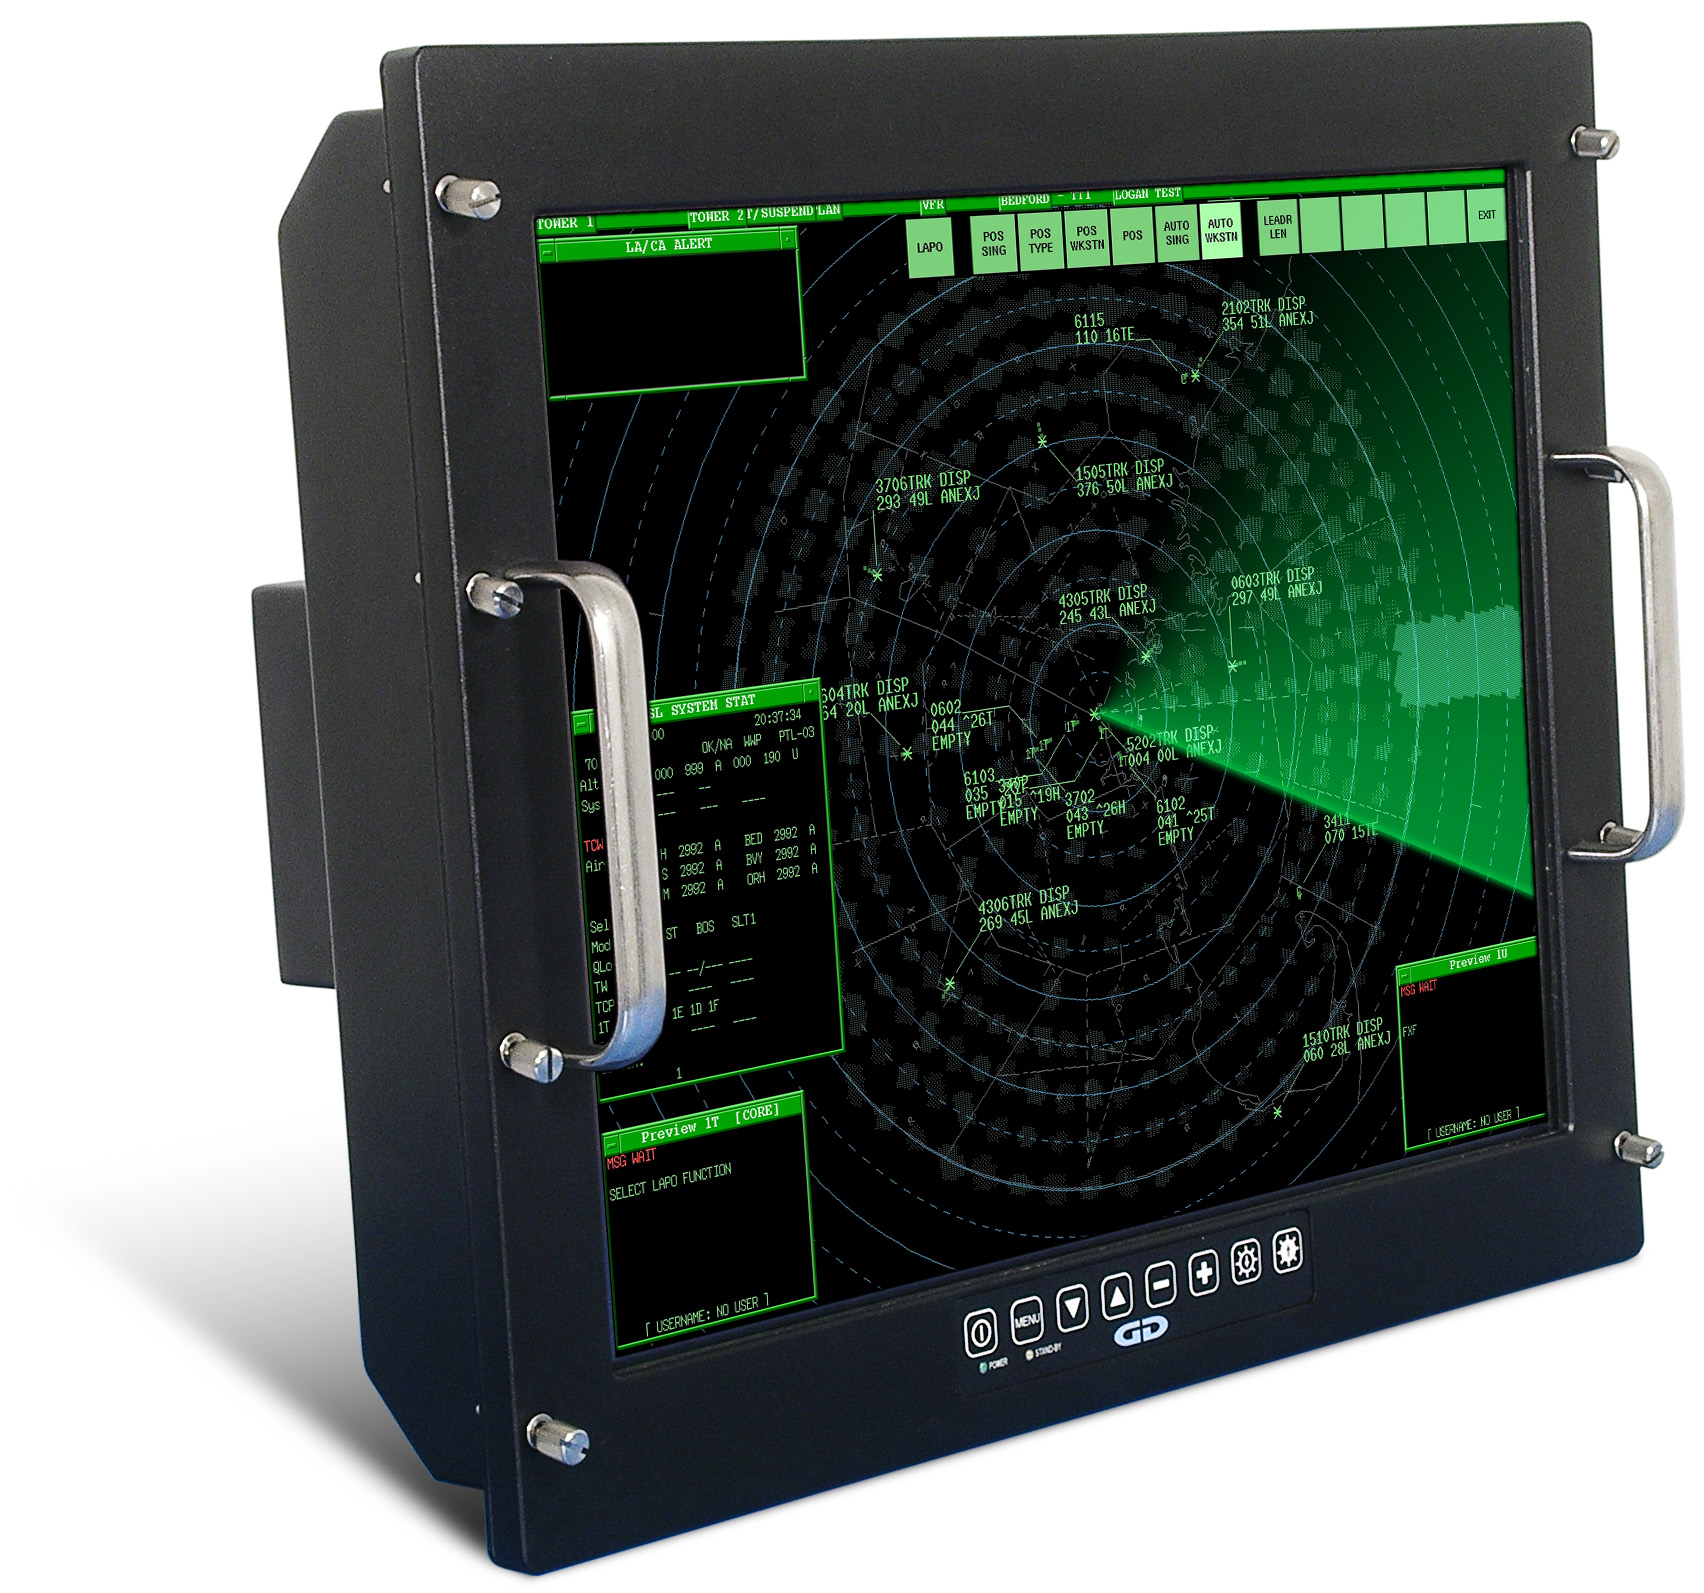 Saber RackMount Solar NVIS military-grade high bright monitor